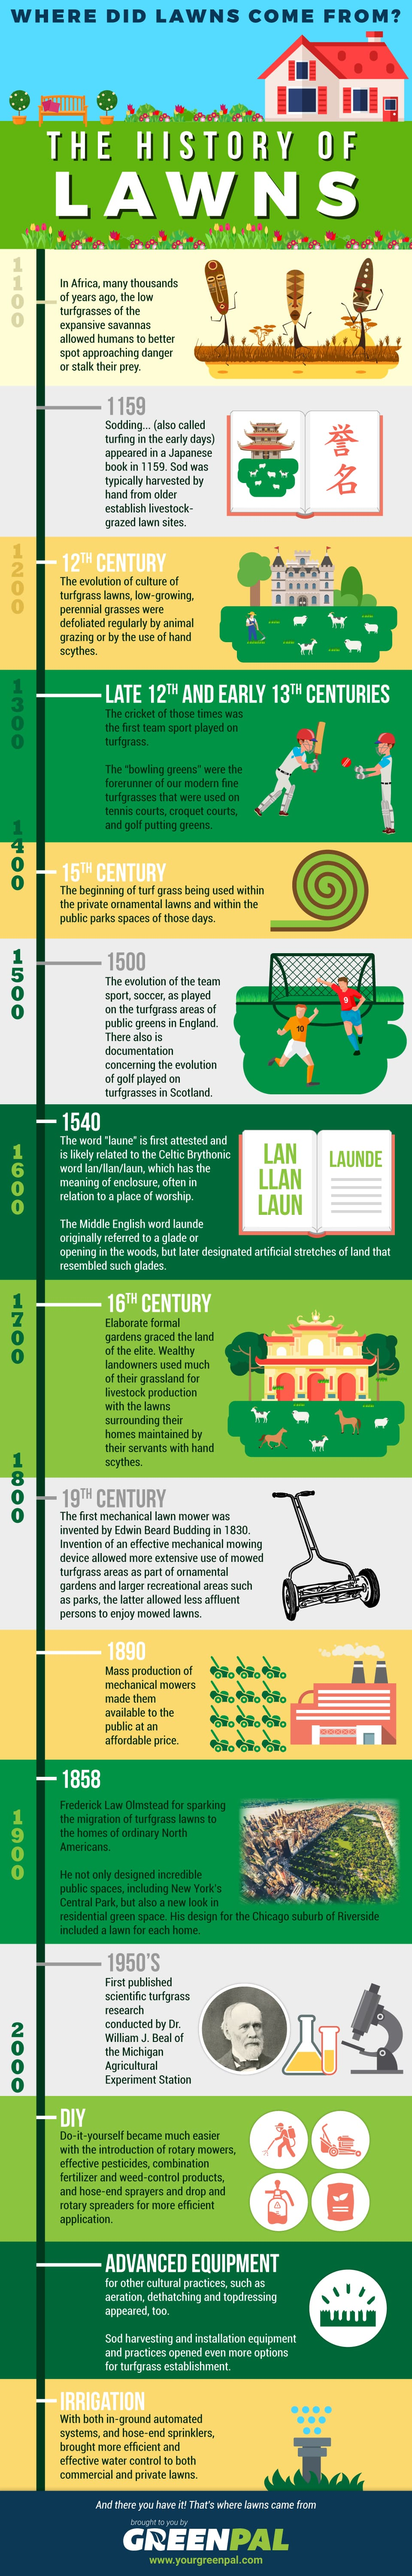 The history of lawns 01 %282%29